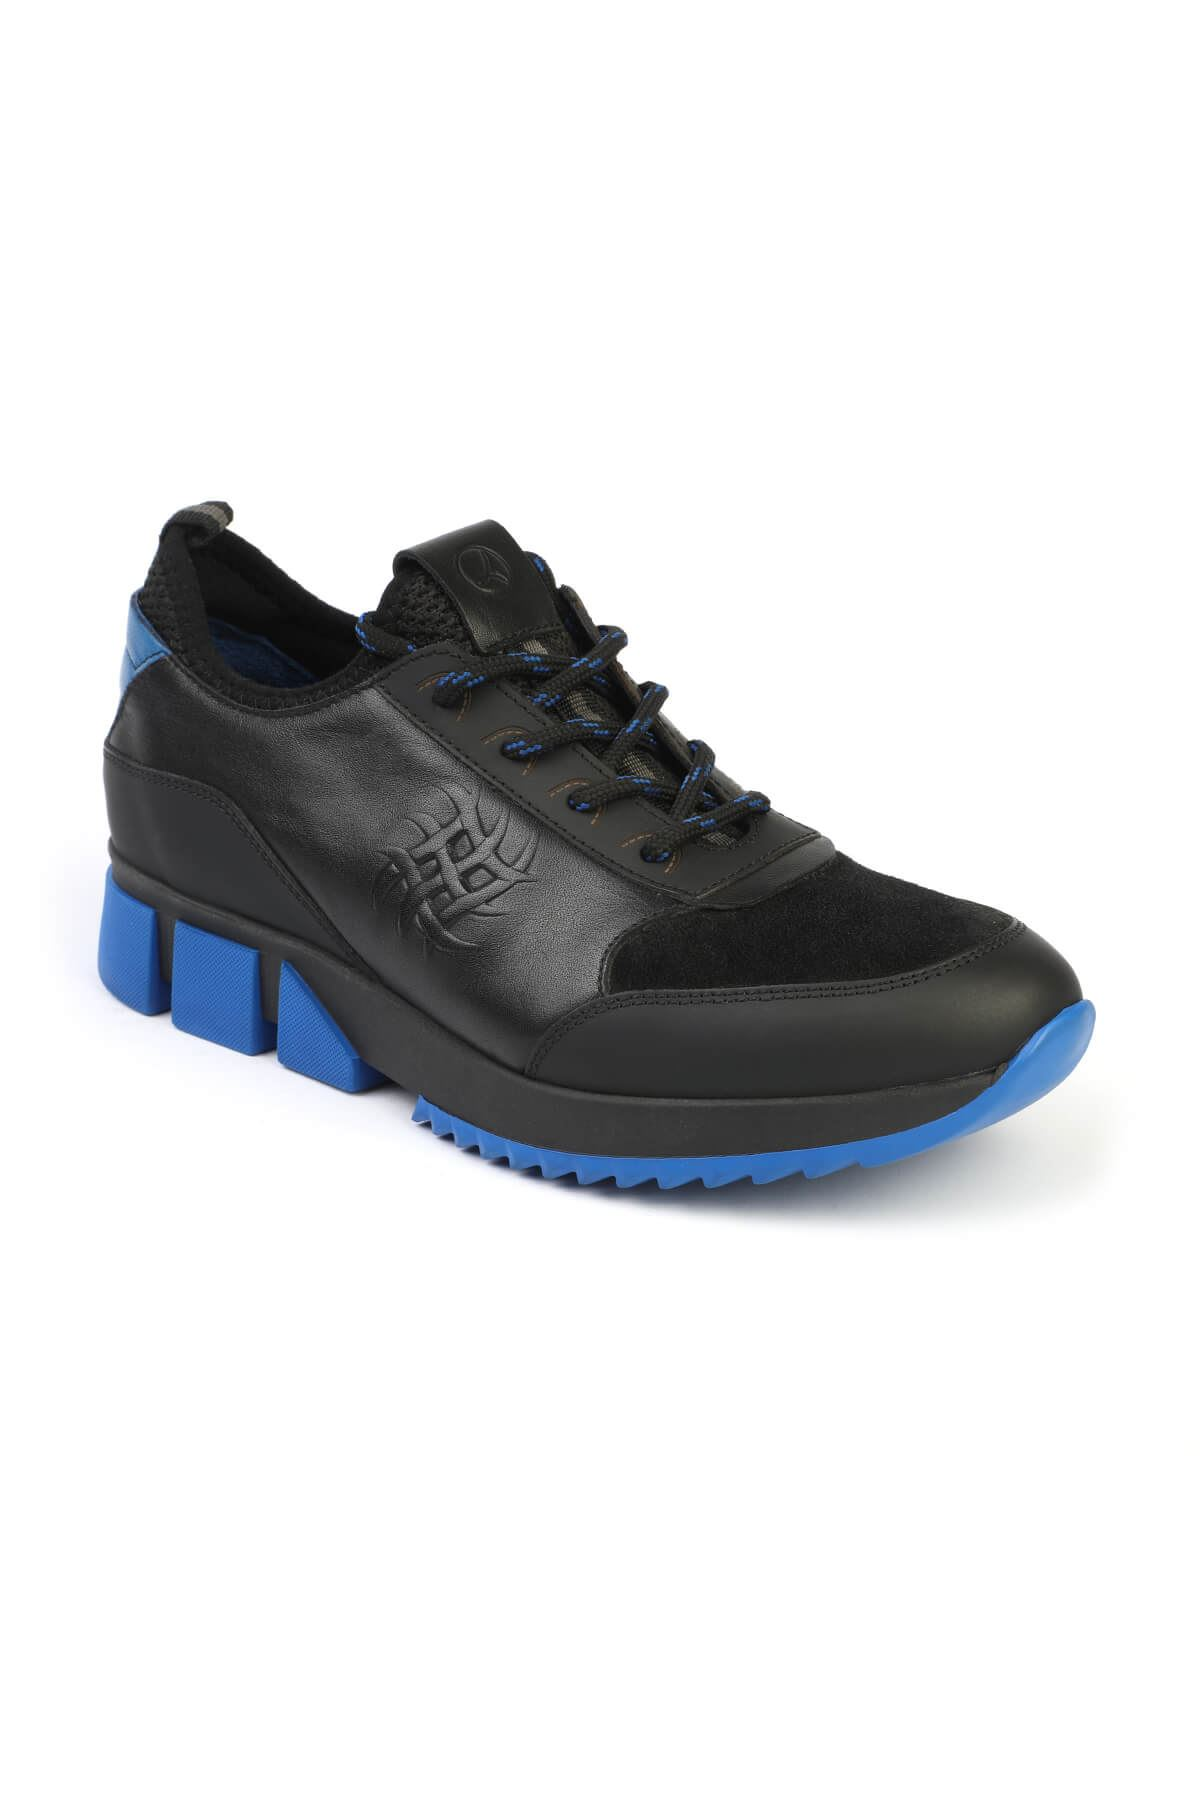 Libero 3130 Black Blue Sport Shoes